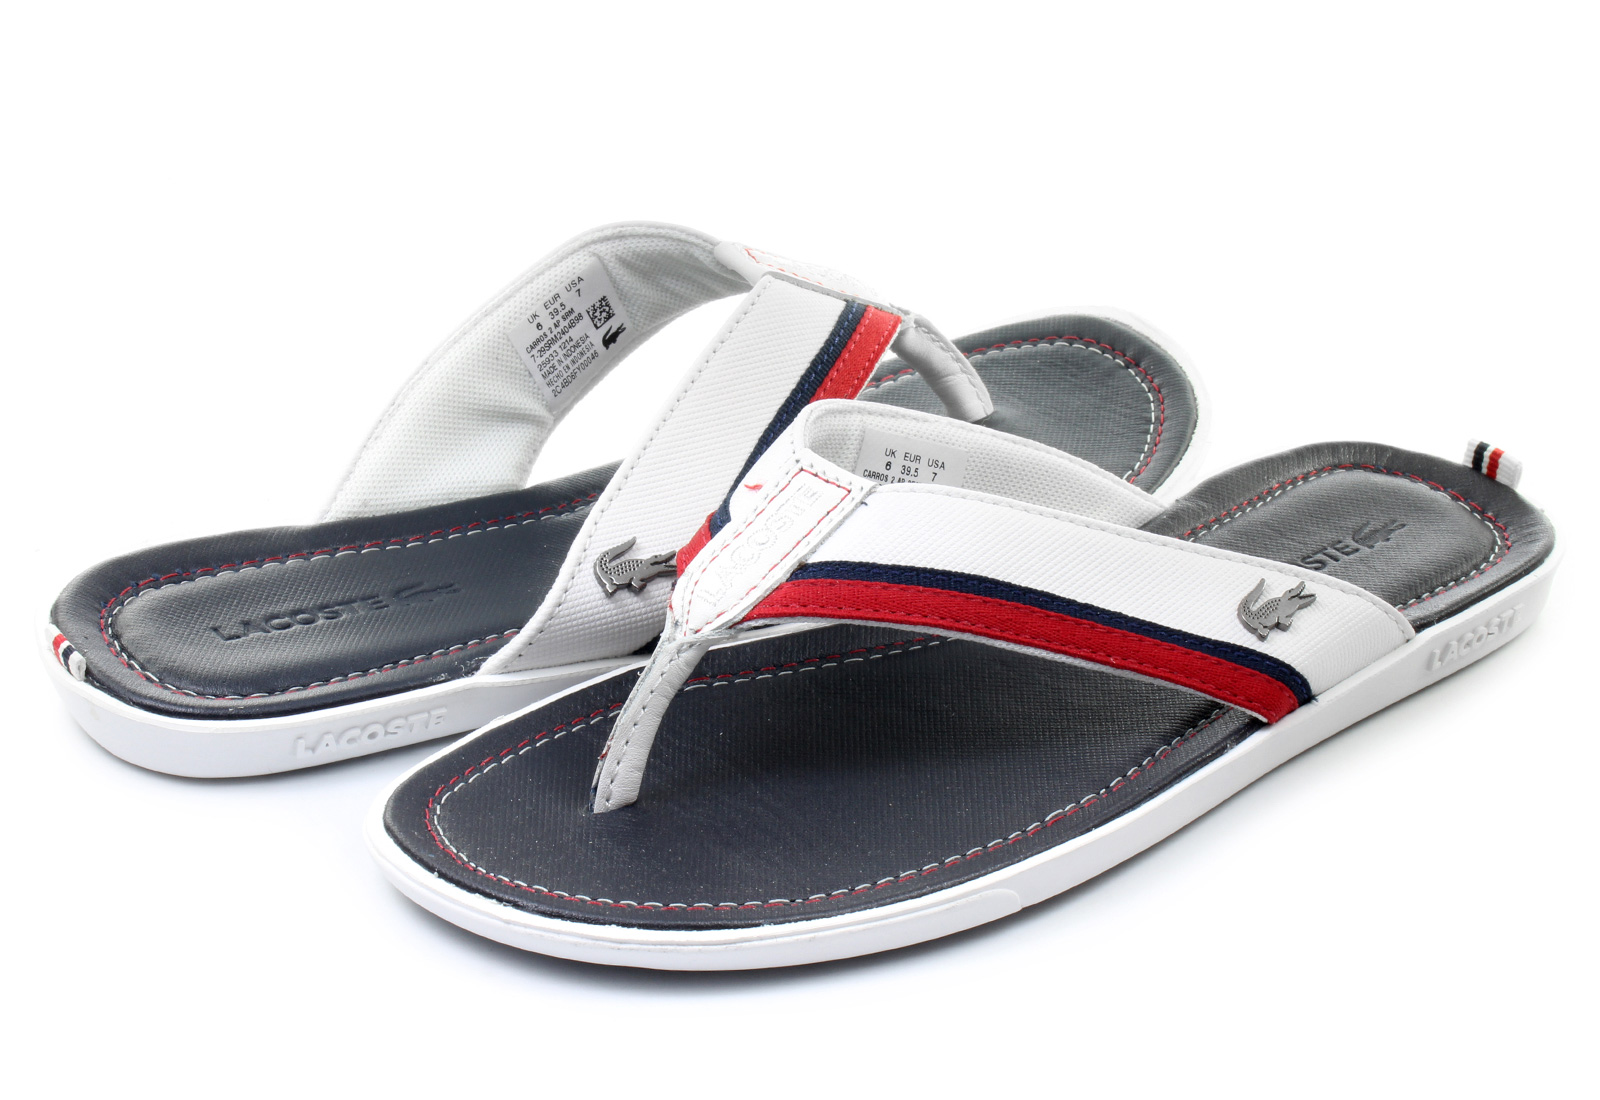 f0de0ead17efb8 Lacoste Slippers - Carros - 152srm2404-b98 - Online shop for ...